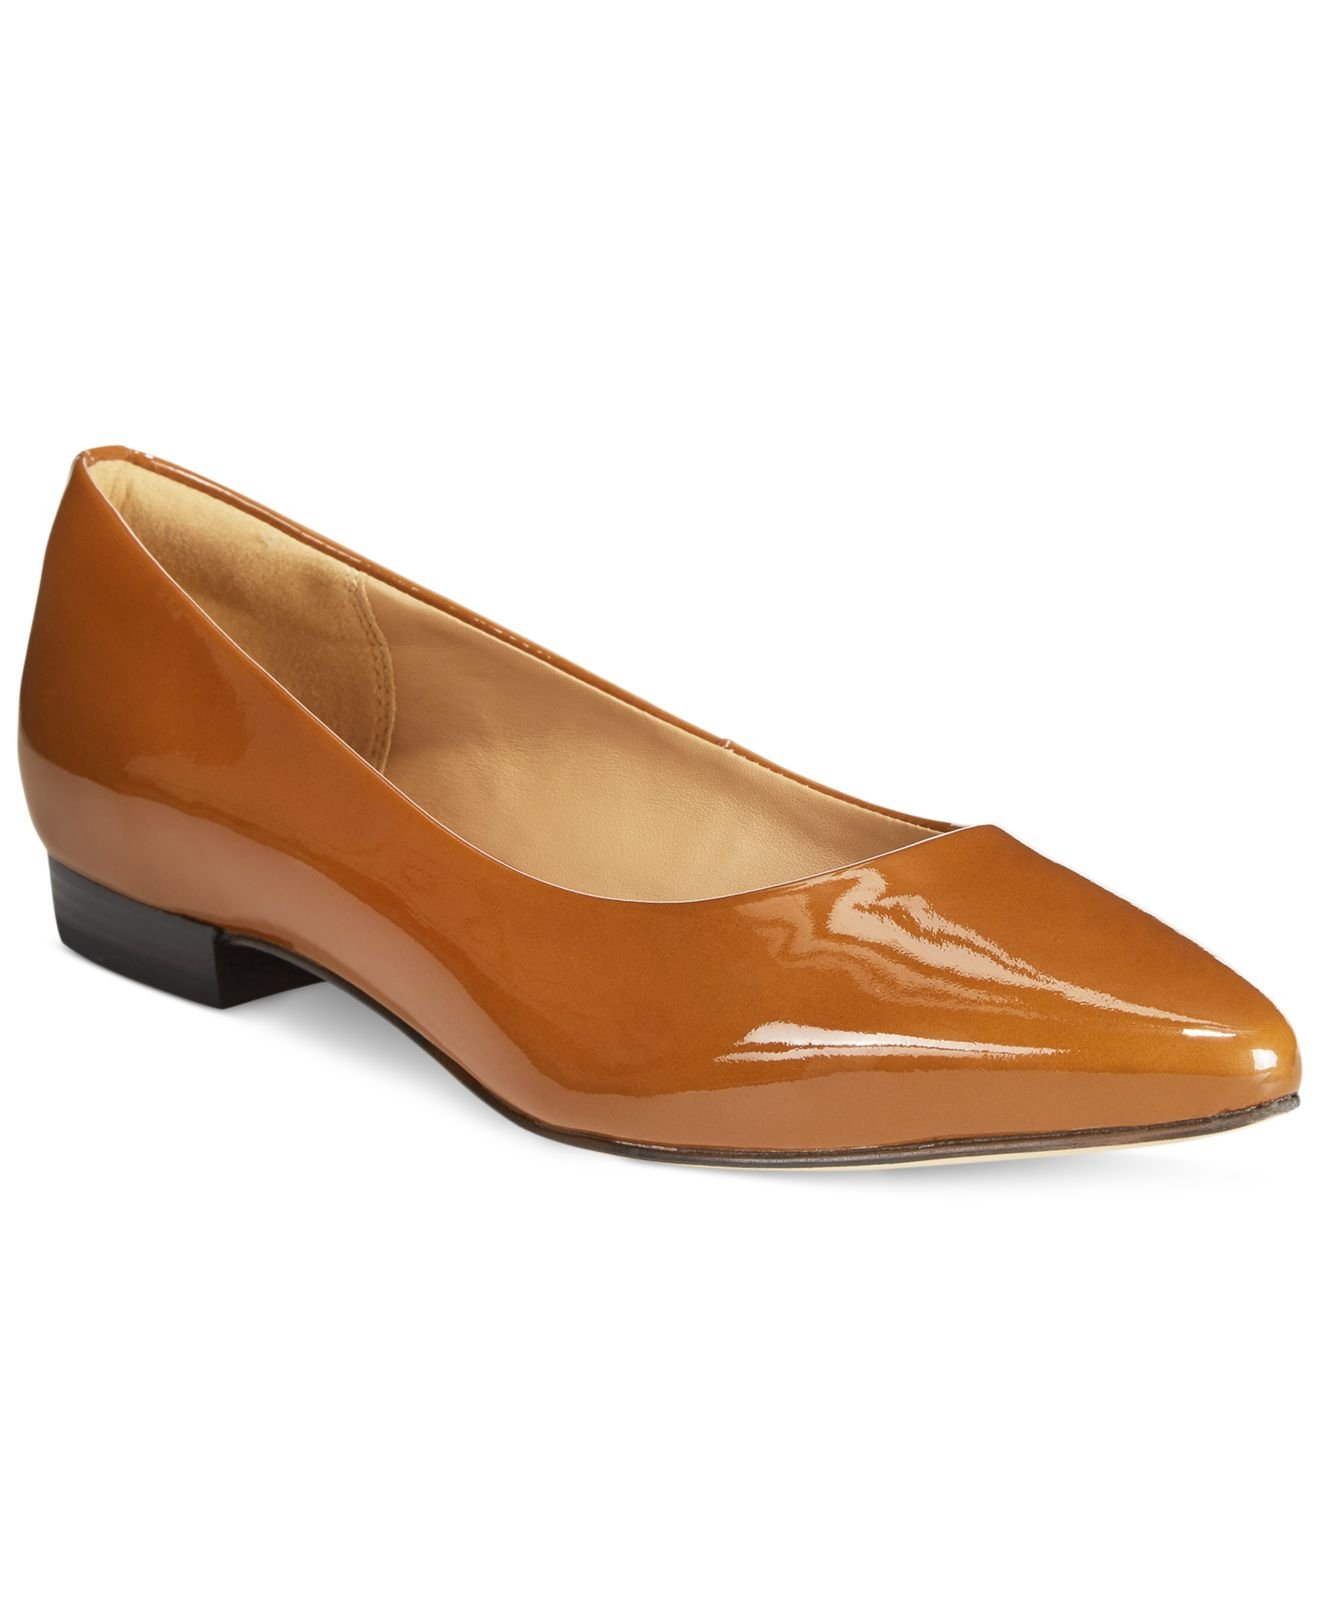 7eabc0f762f Lyst - Clarks Artisan Women s Corabeth Abby Pointed Toe Flats in Brown